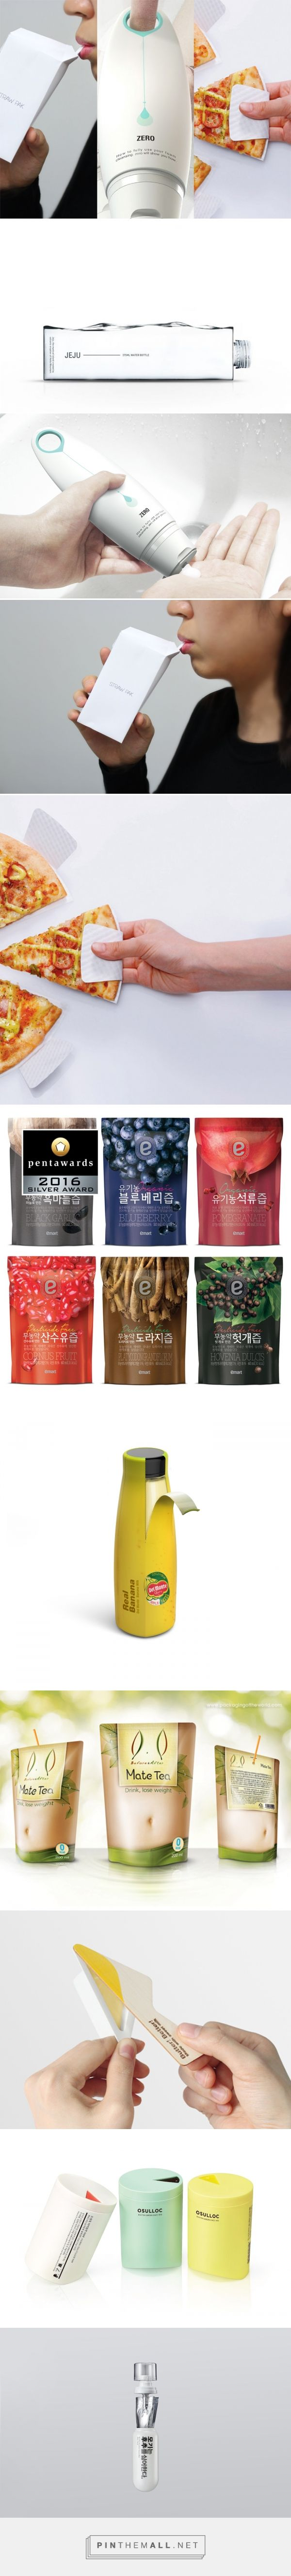 Check out these 10 Innovative Korean Packaging Design - http://www.packagingoftheworld.com/2017/05/10-innovative-korean-packaging-designs.html